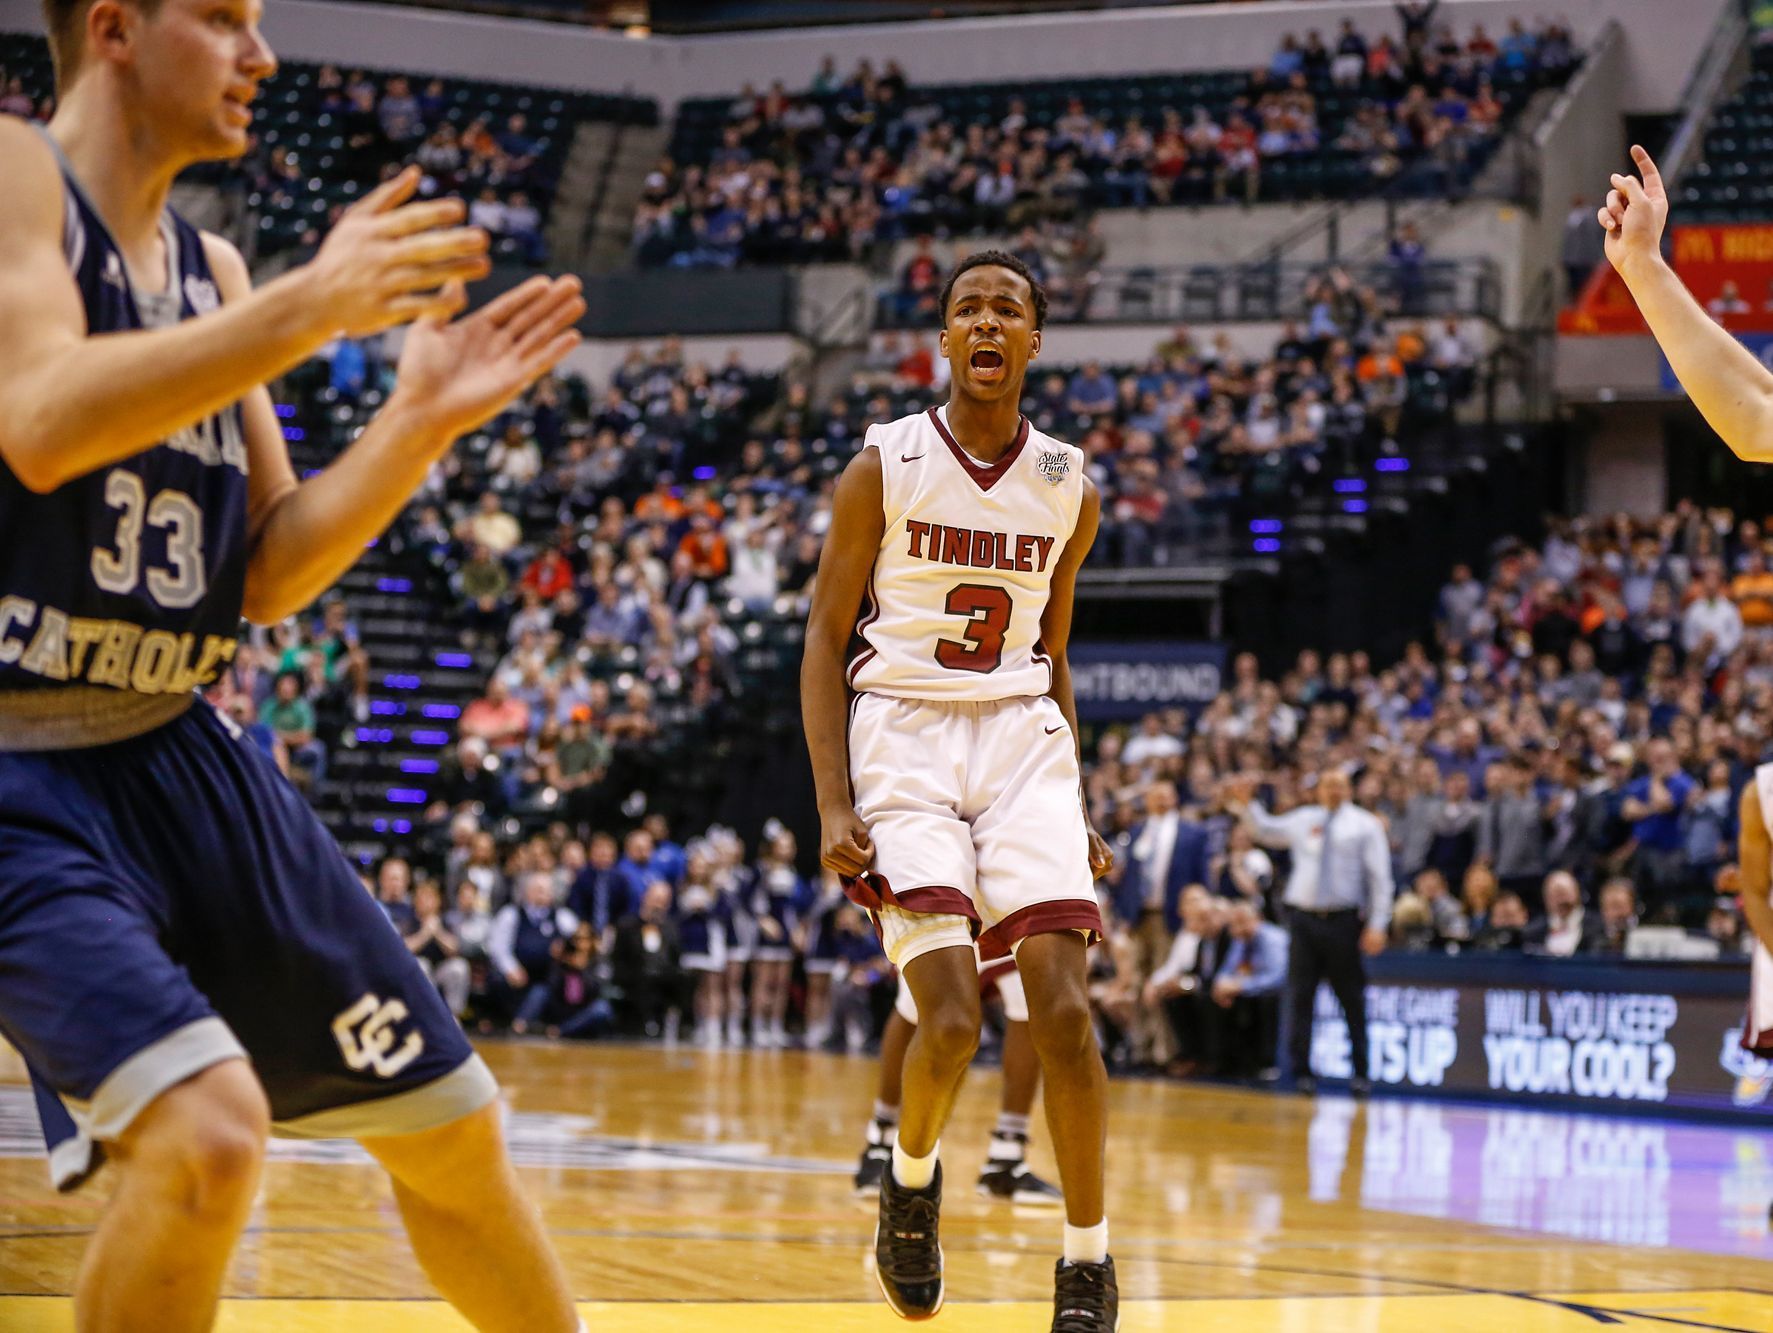 Tindley Tigers' Hunter White (3) celebrates after putting the Tigers up 51-49 over the Lafayette Central Catholic Knights as the time ticked off the clock in the fourth quarter during the IHSAA Class A state championship game at Bankers Life Fieldhouse in Indianapolis on Saturday, March 25, 2017.